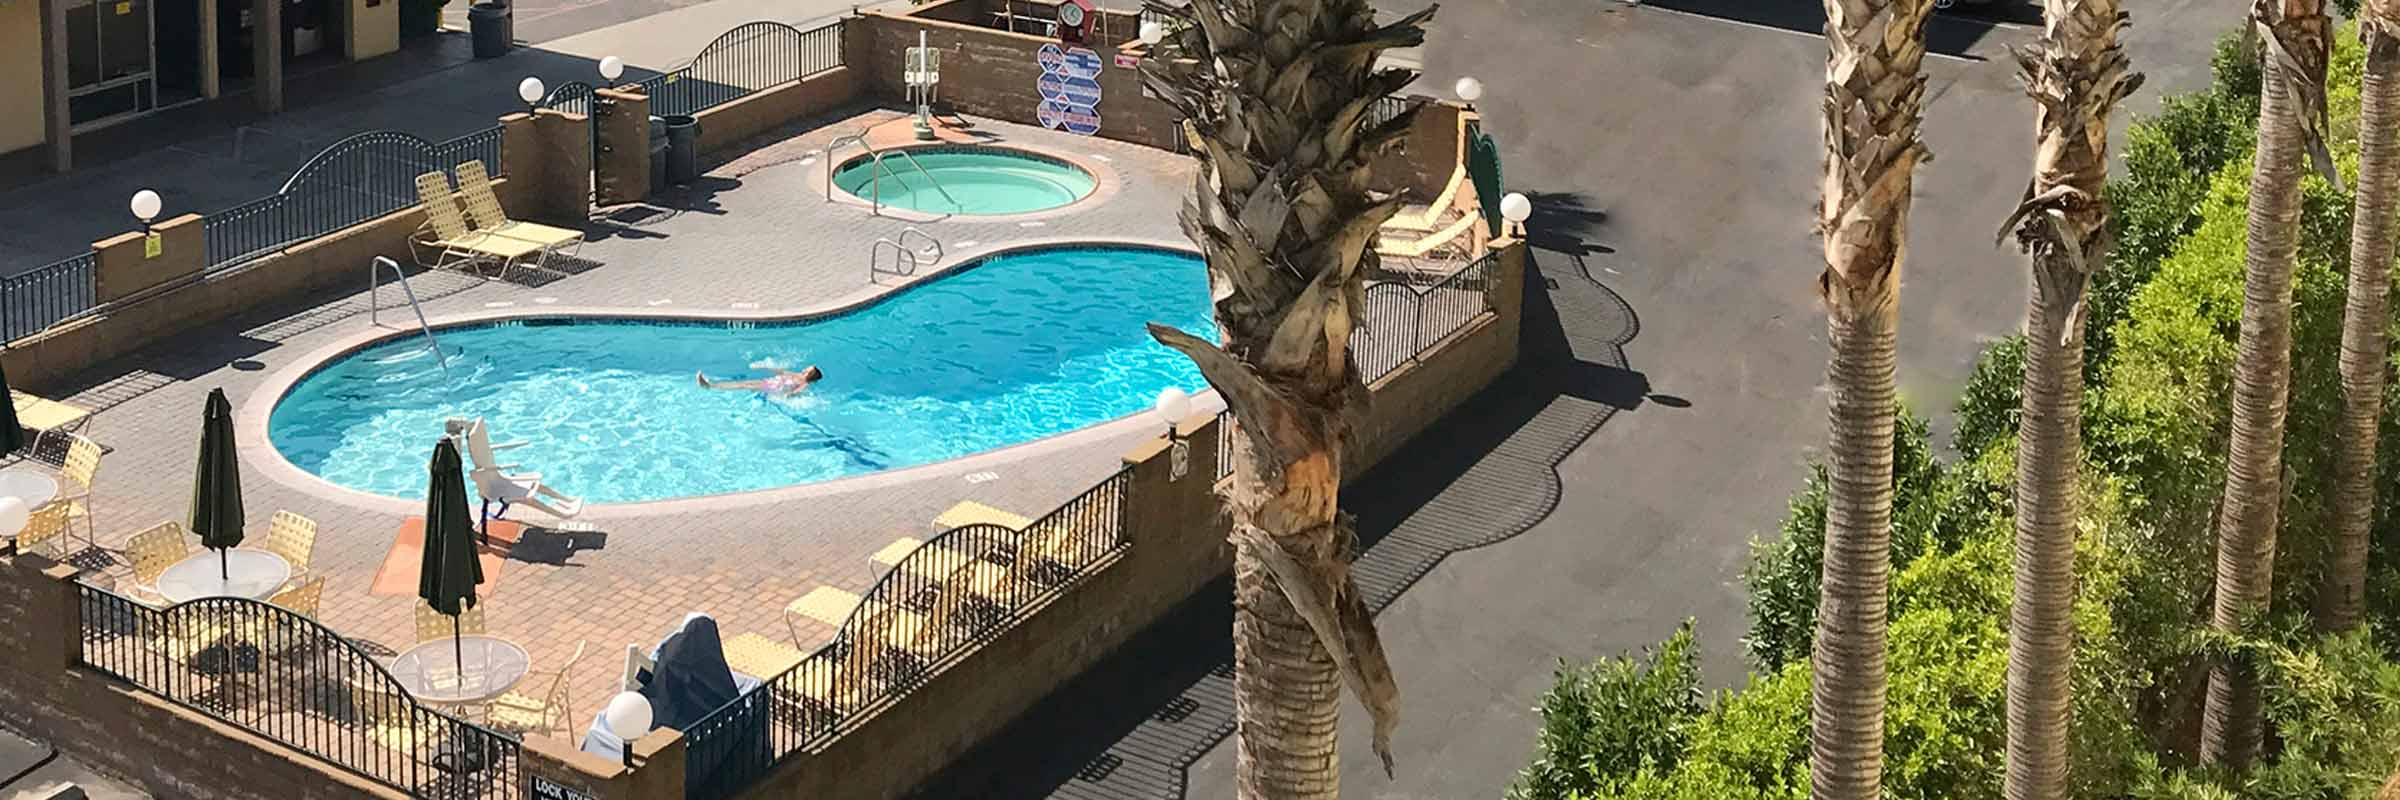 Kings Inn Anaheim - formerly Super Eight Anaheim - pool